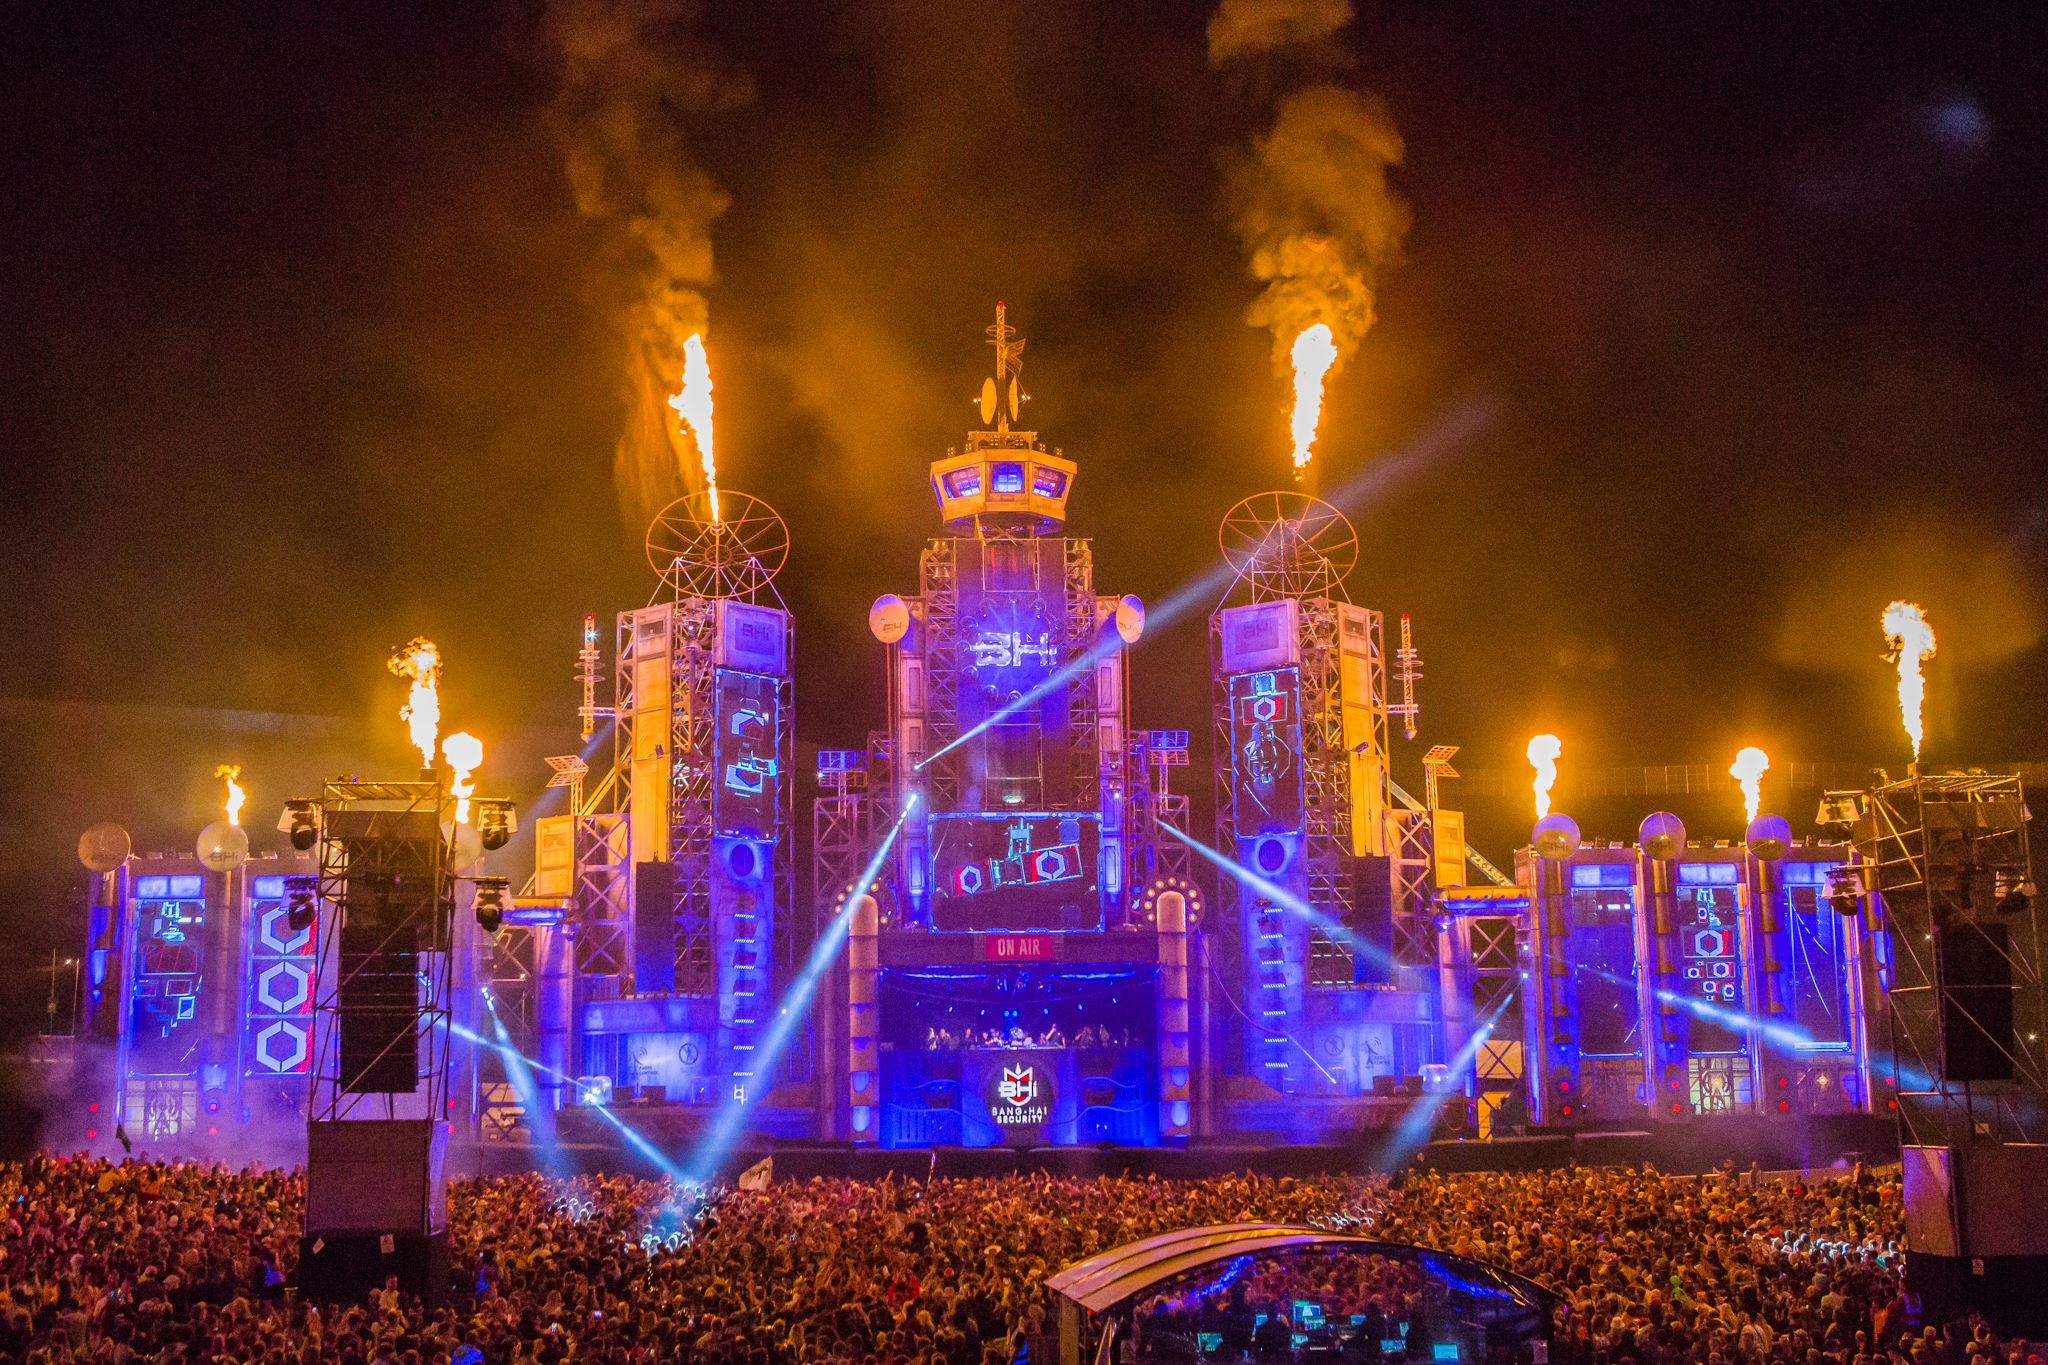 Pictures from BoomTown 2018 at the Matterley Estate, near Winchester - Picture provide by Boomtown